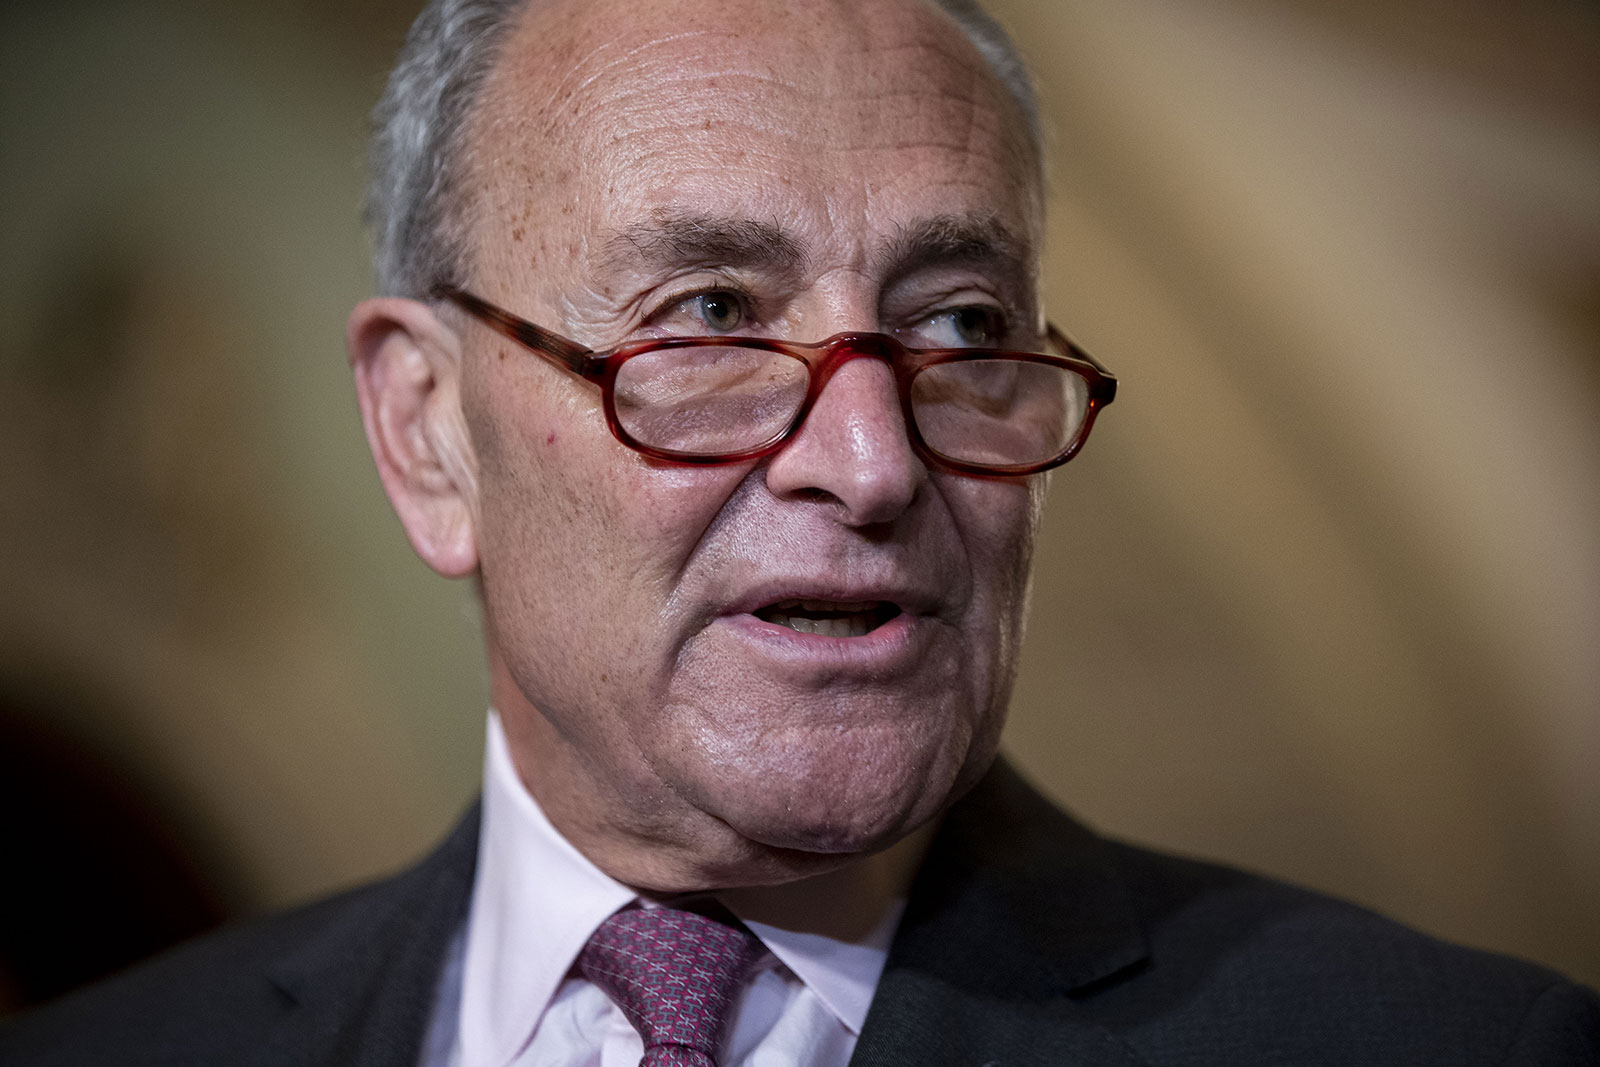 Senate Majority Leader Chuck Schumer speaks during a news conference at the US Capitol on Tuesday, September 28.